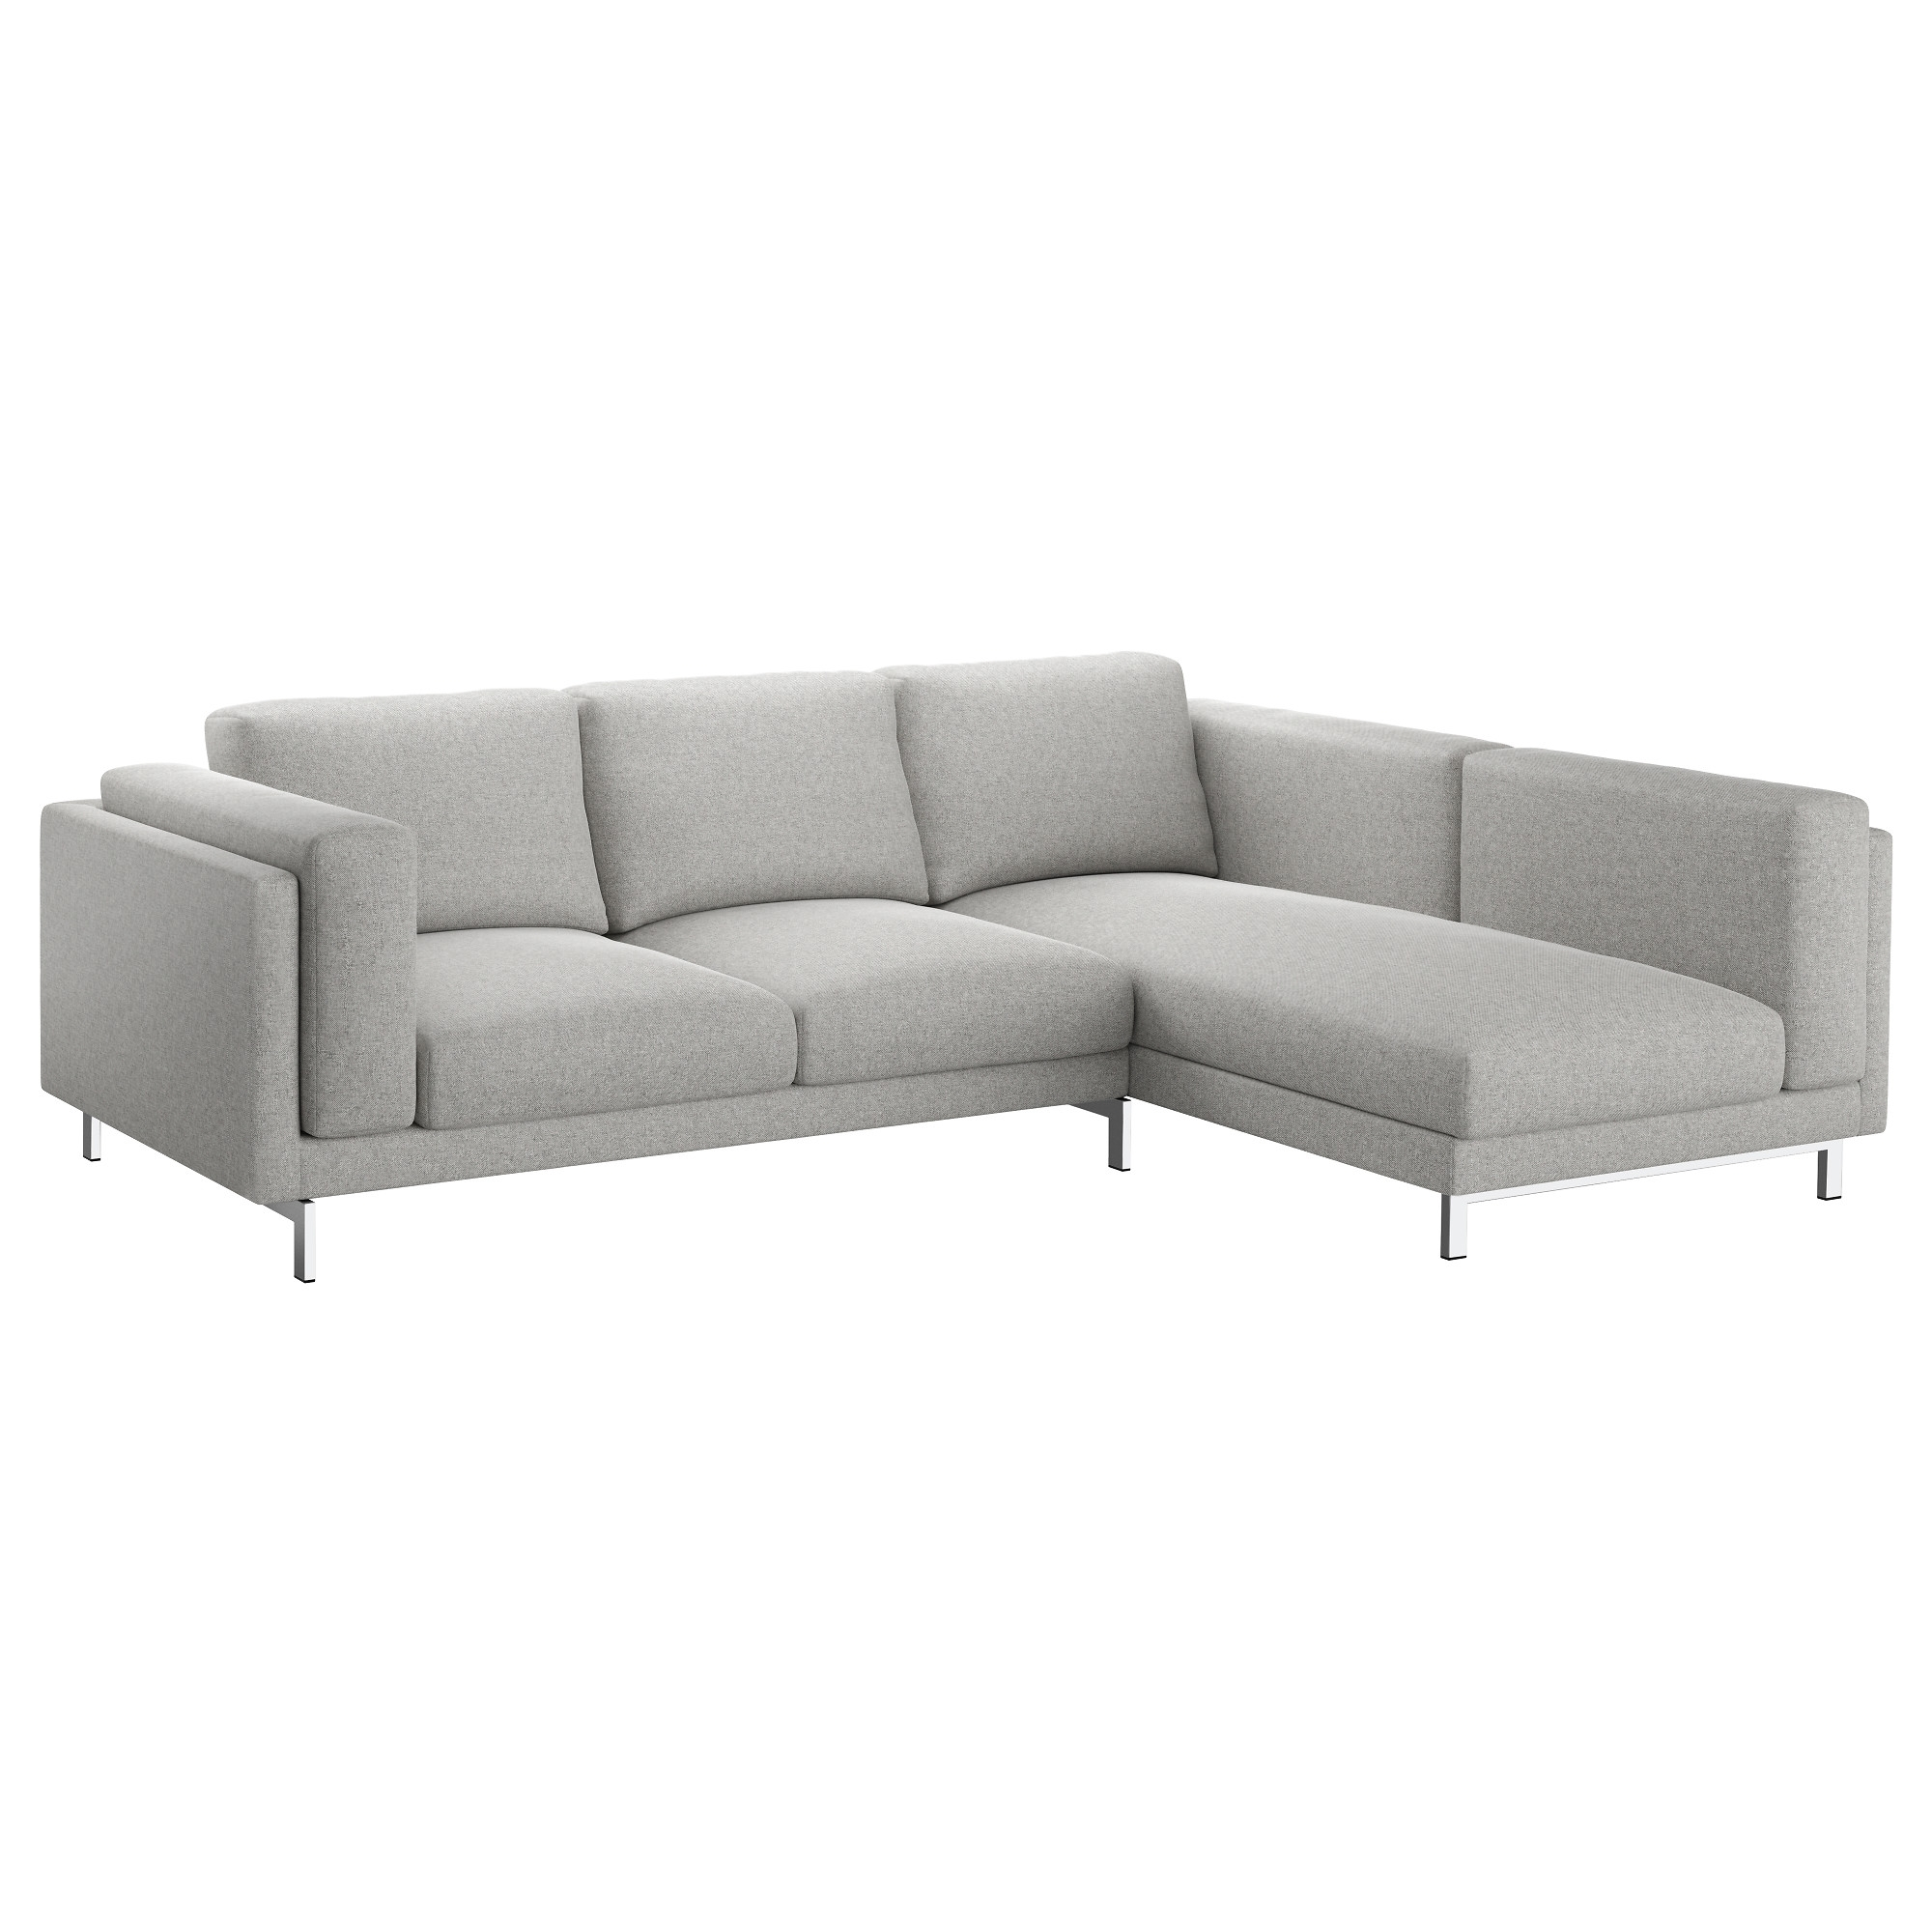 Ikea Sectional Sofa Beds With Regard To Popular Nockeby Sofa – With Chaise, Left/tallmyra White/black, Chrome (View 9 of 15)